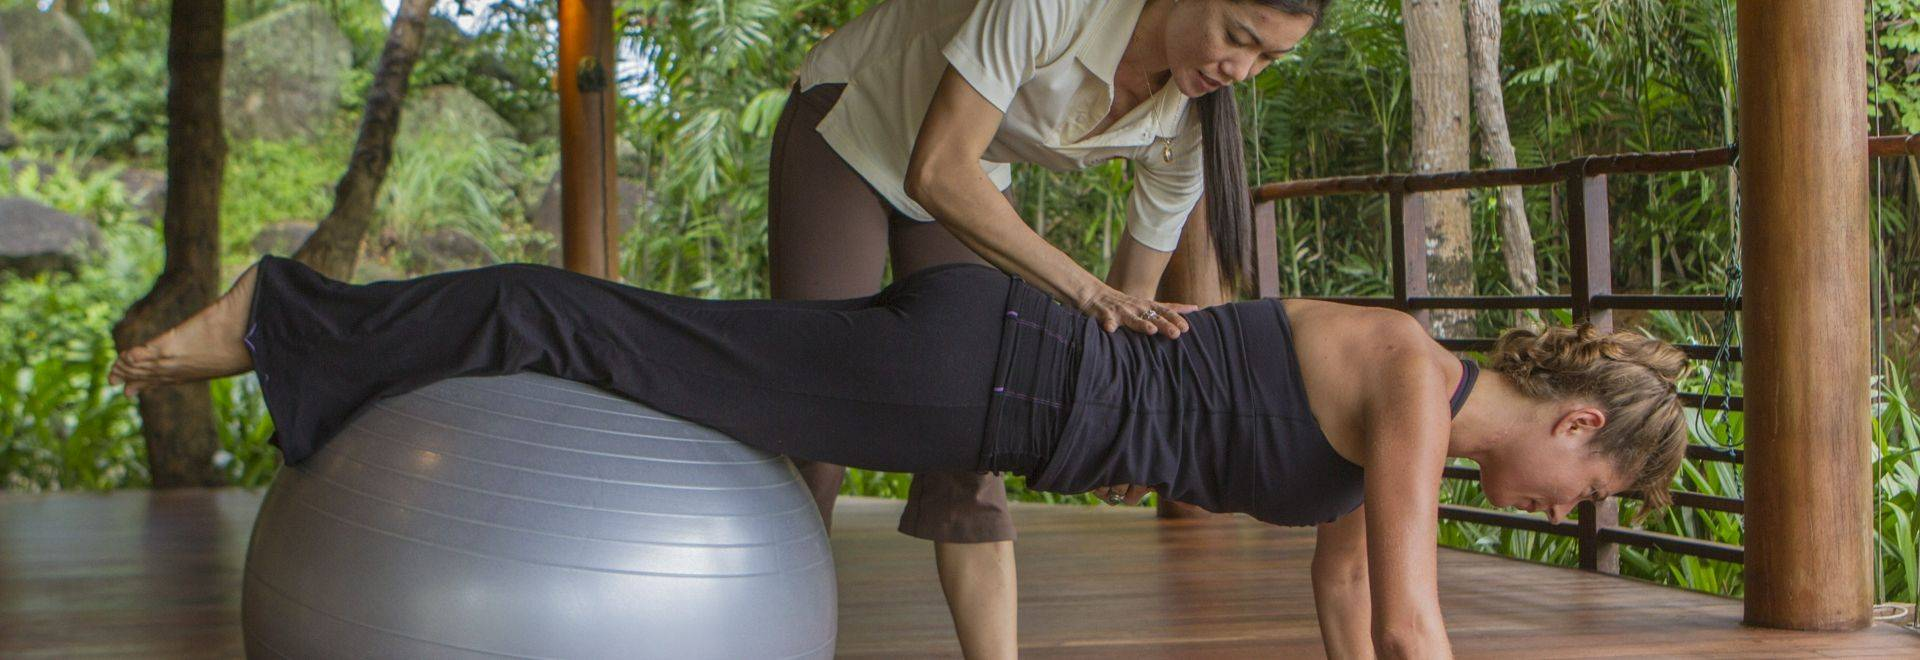 Kamalaya-fitness-training-2.jpg